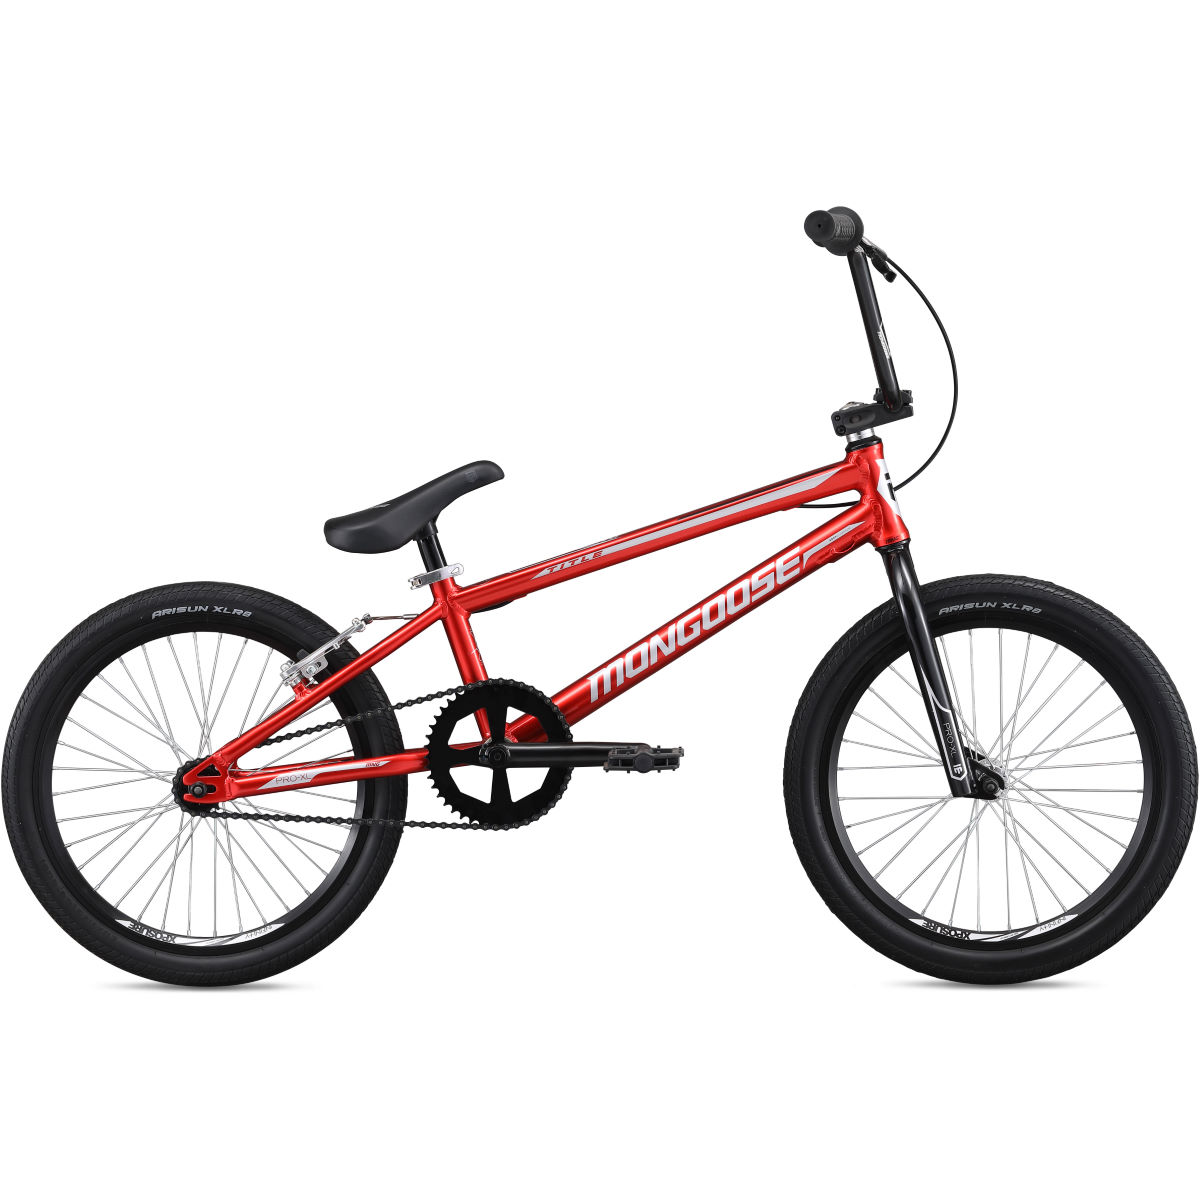 Image of Mongoose Title Pro XL BMX Bike Race BMX Bikes